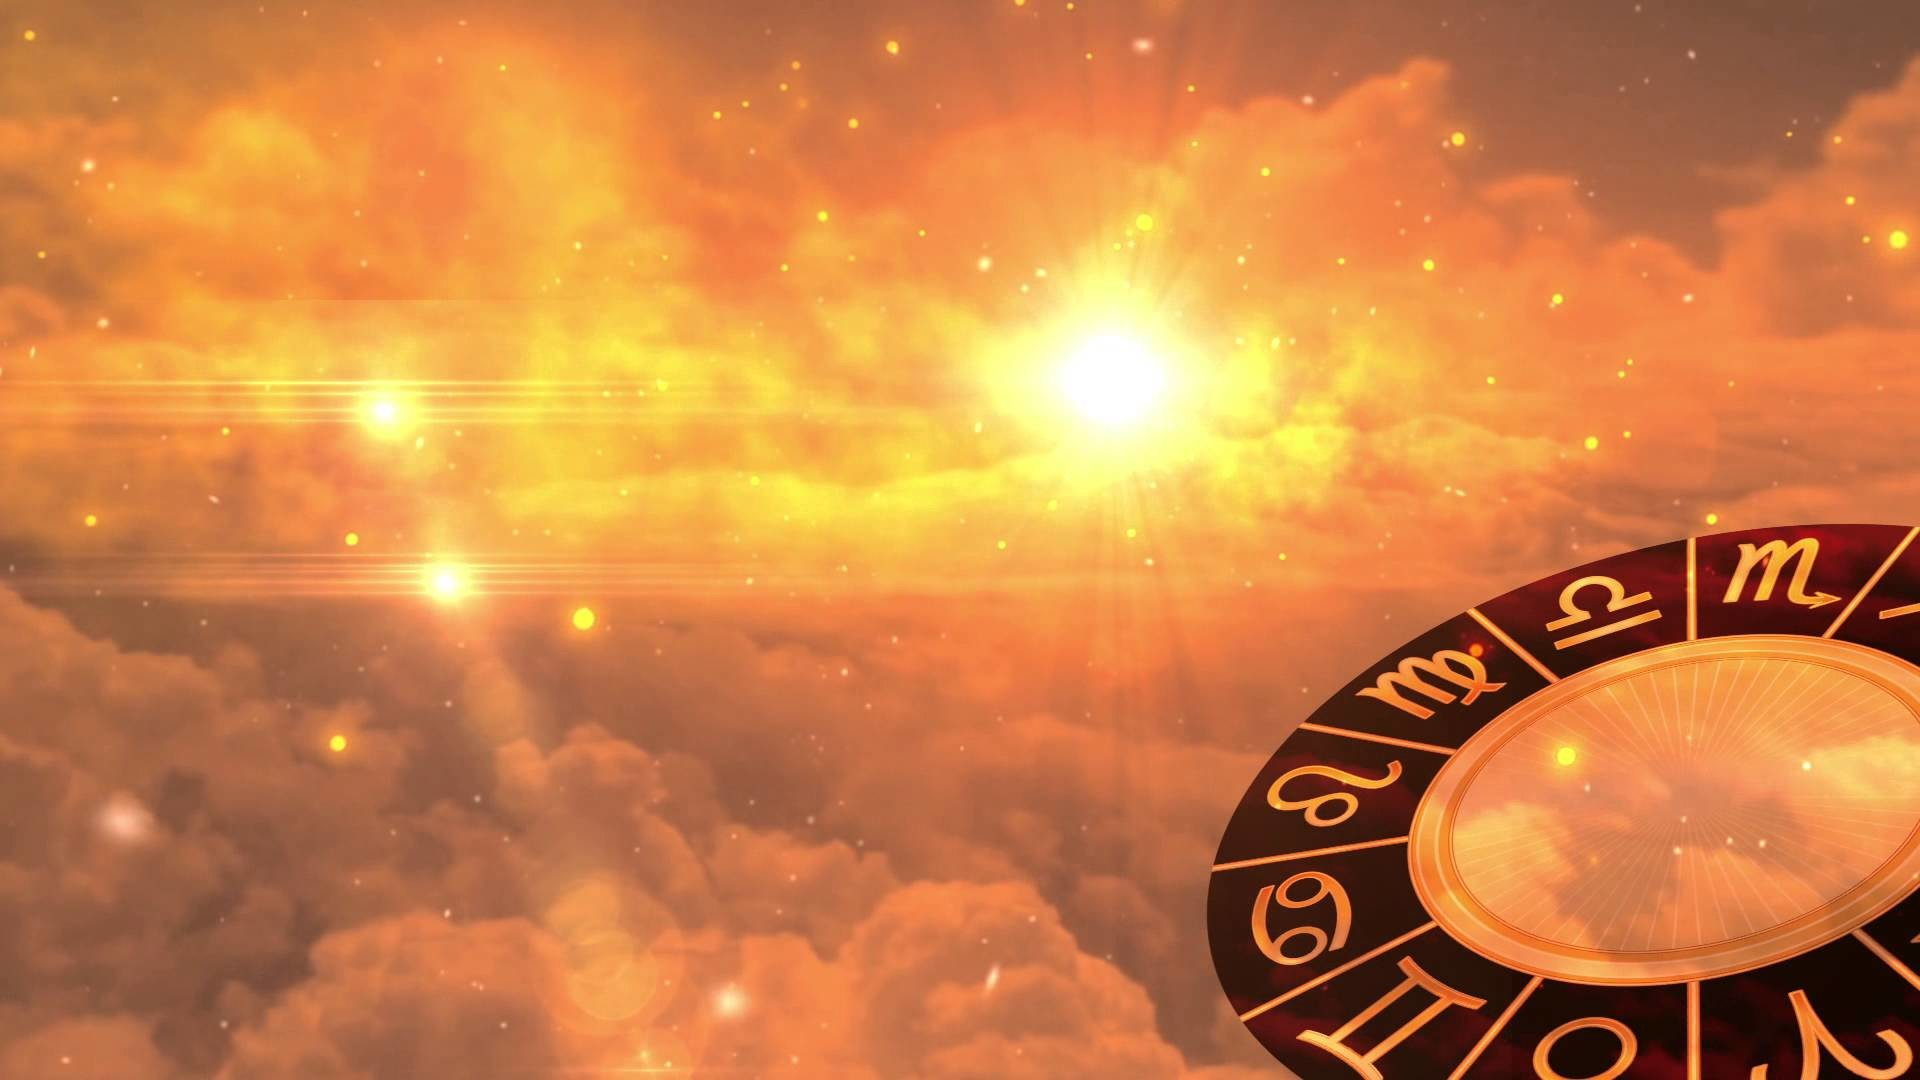 1920x1080 Astrology Background Data Id 156301 Astrologer Visiting Card Background 1920x1080 Wallpaper Teahub Io